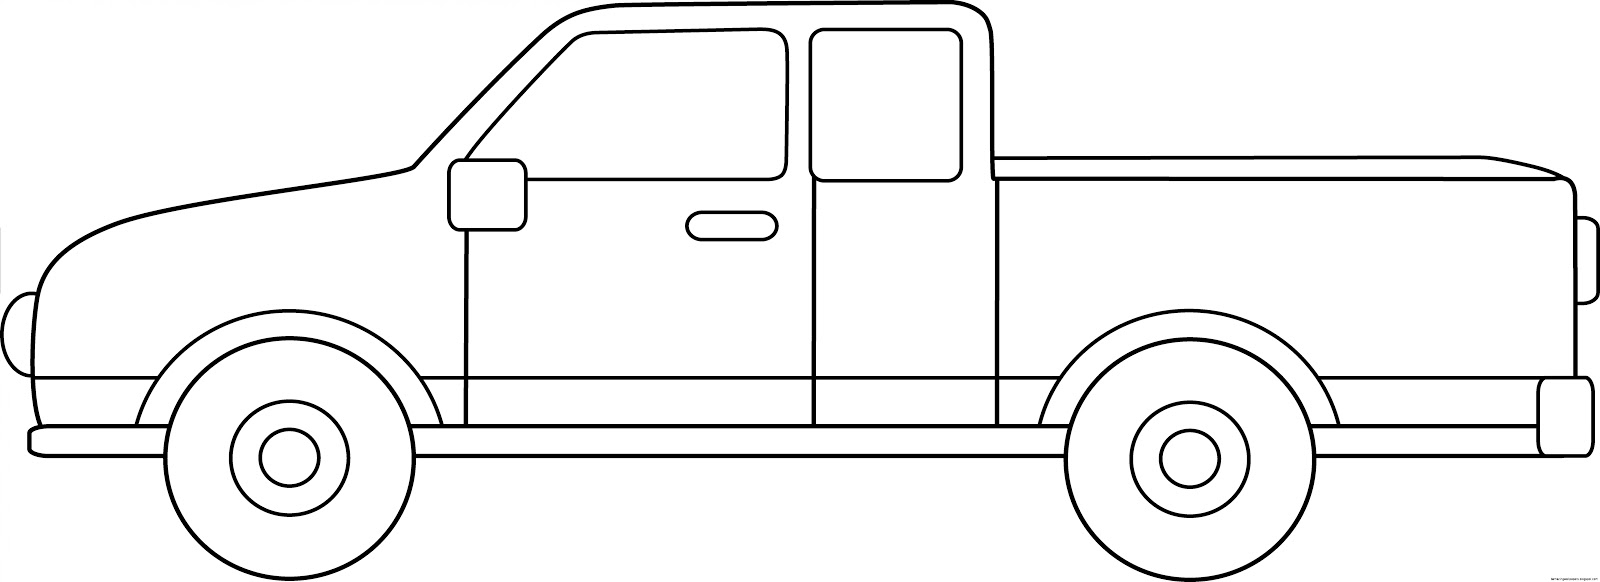 Pickup truck clipart black and white 4 » Clipart Station.